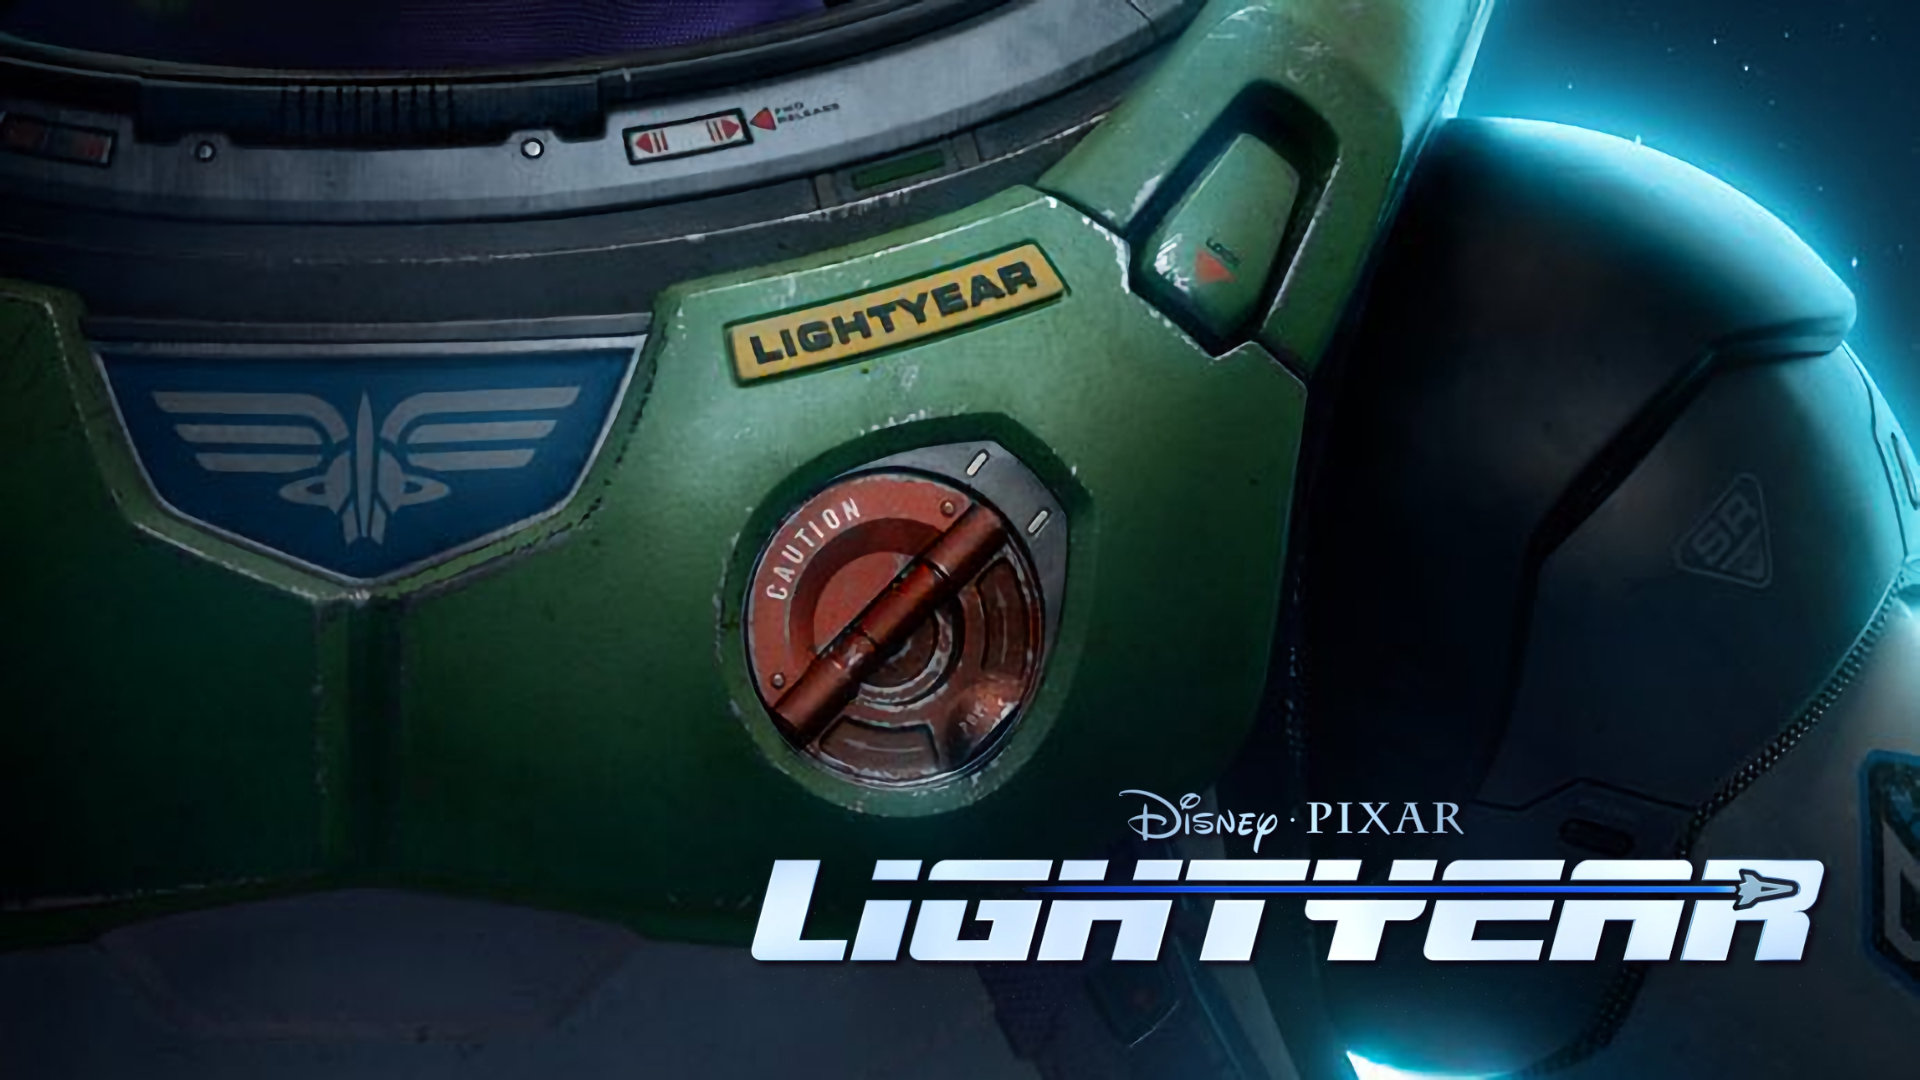 Go To Infinity And Beyond In The Teaser Trailer For Disney Pixar's Lightyear